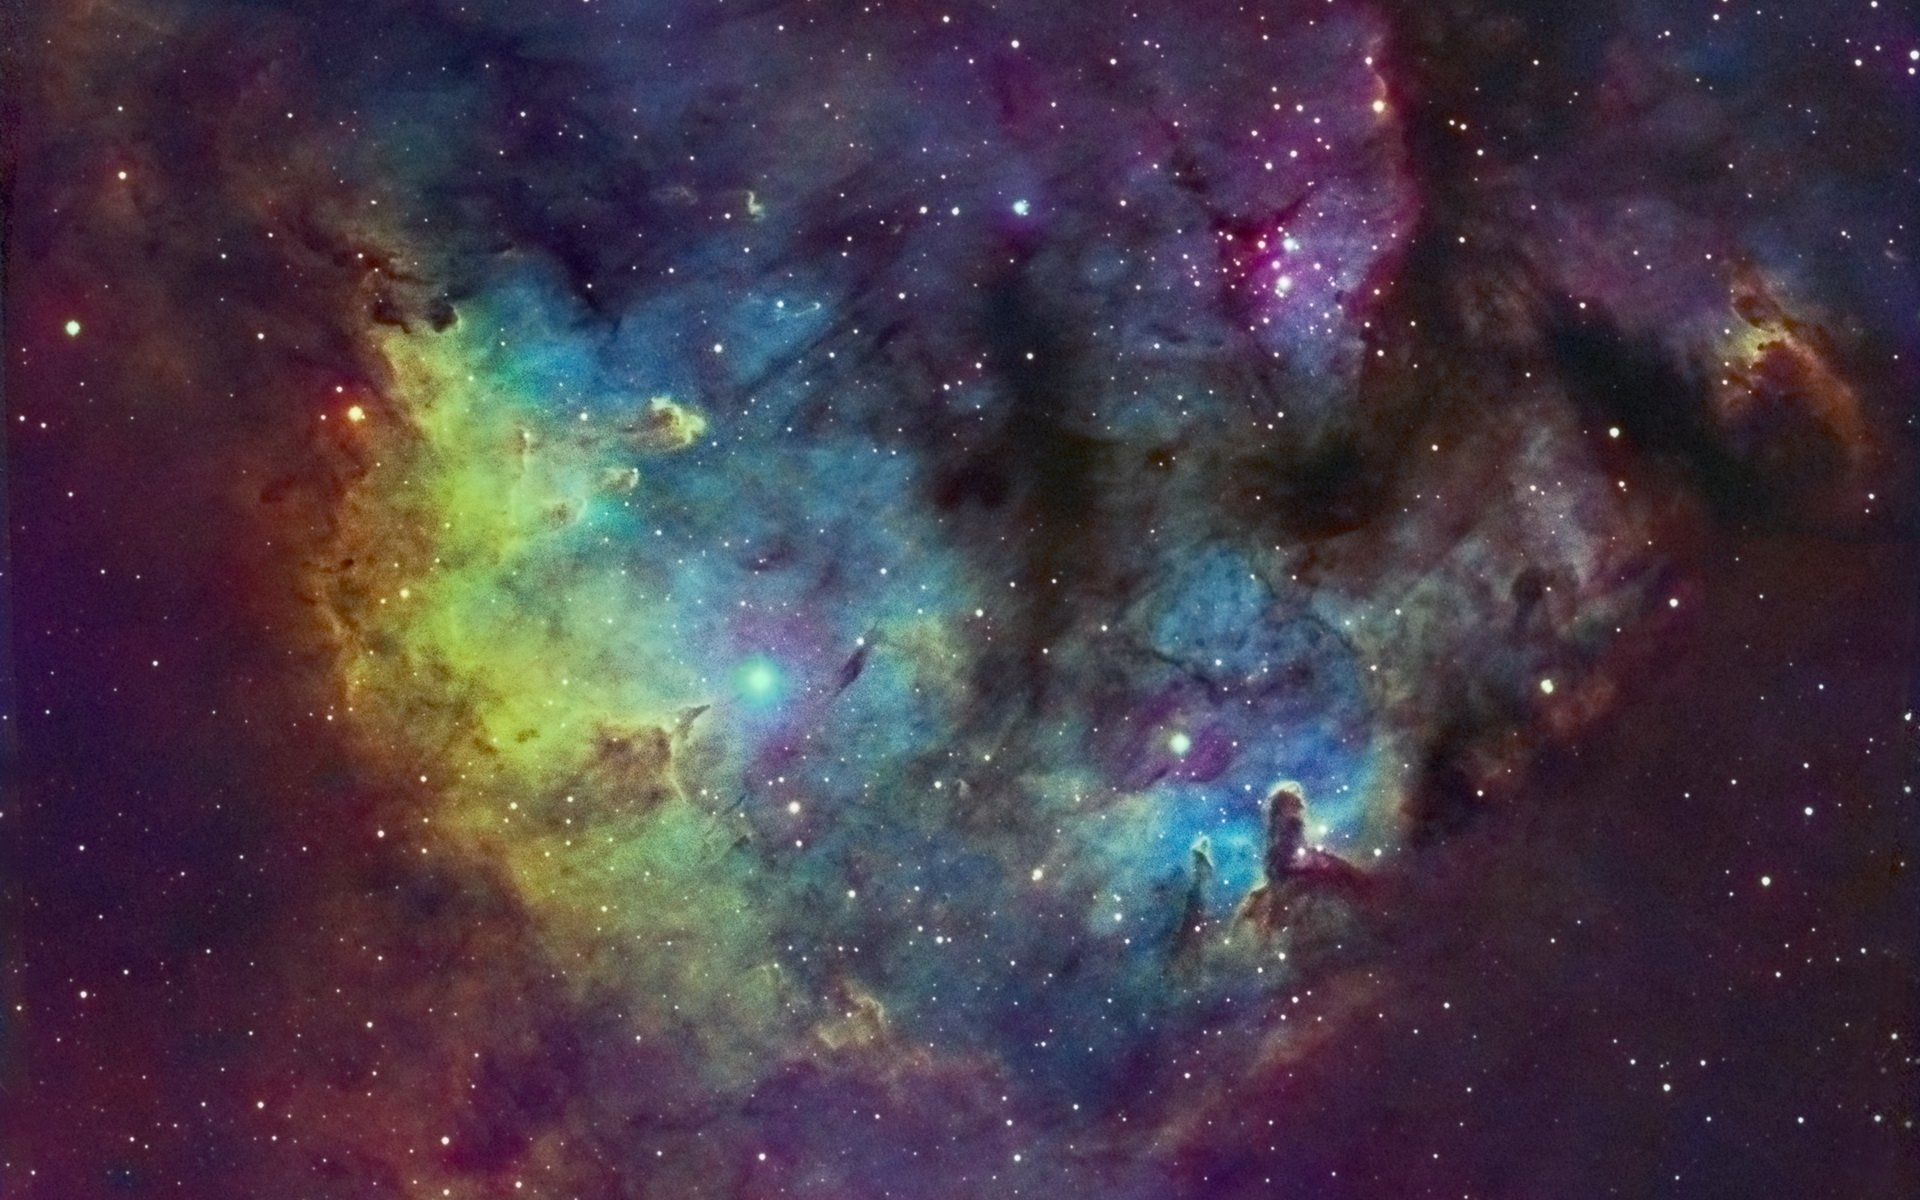 6 Awesome Cosmos Inspired Hd Wallpapers: Nebula HD Wallpaper